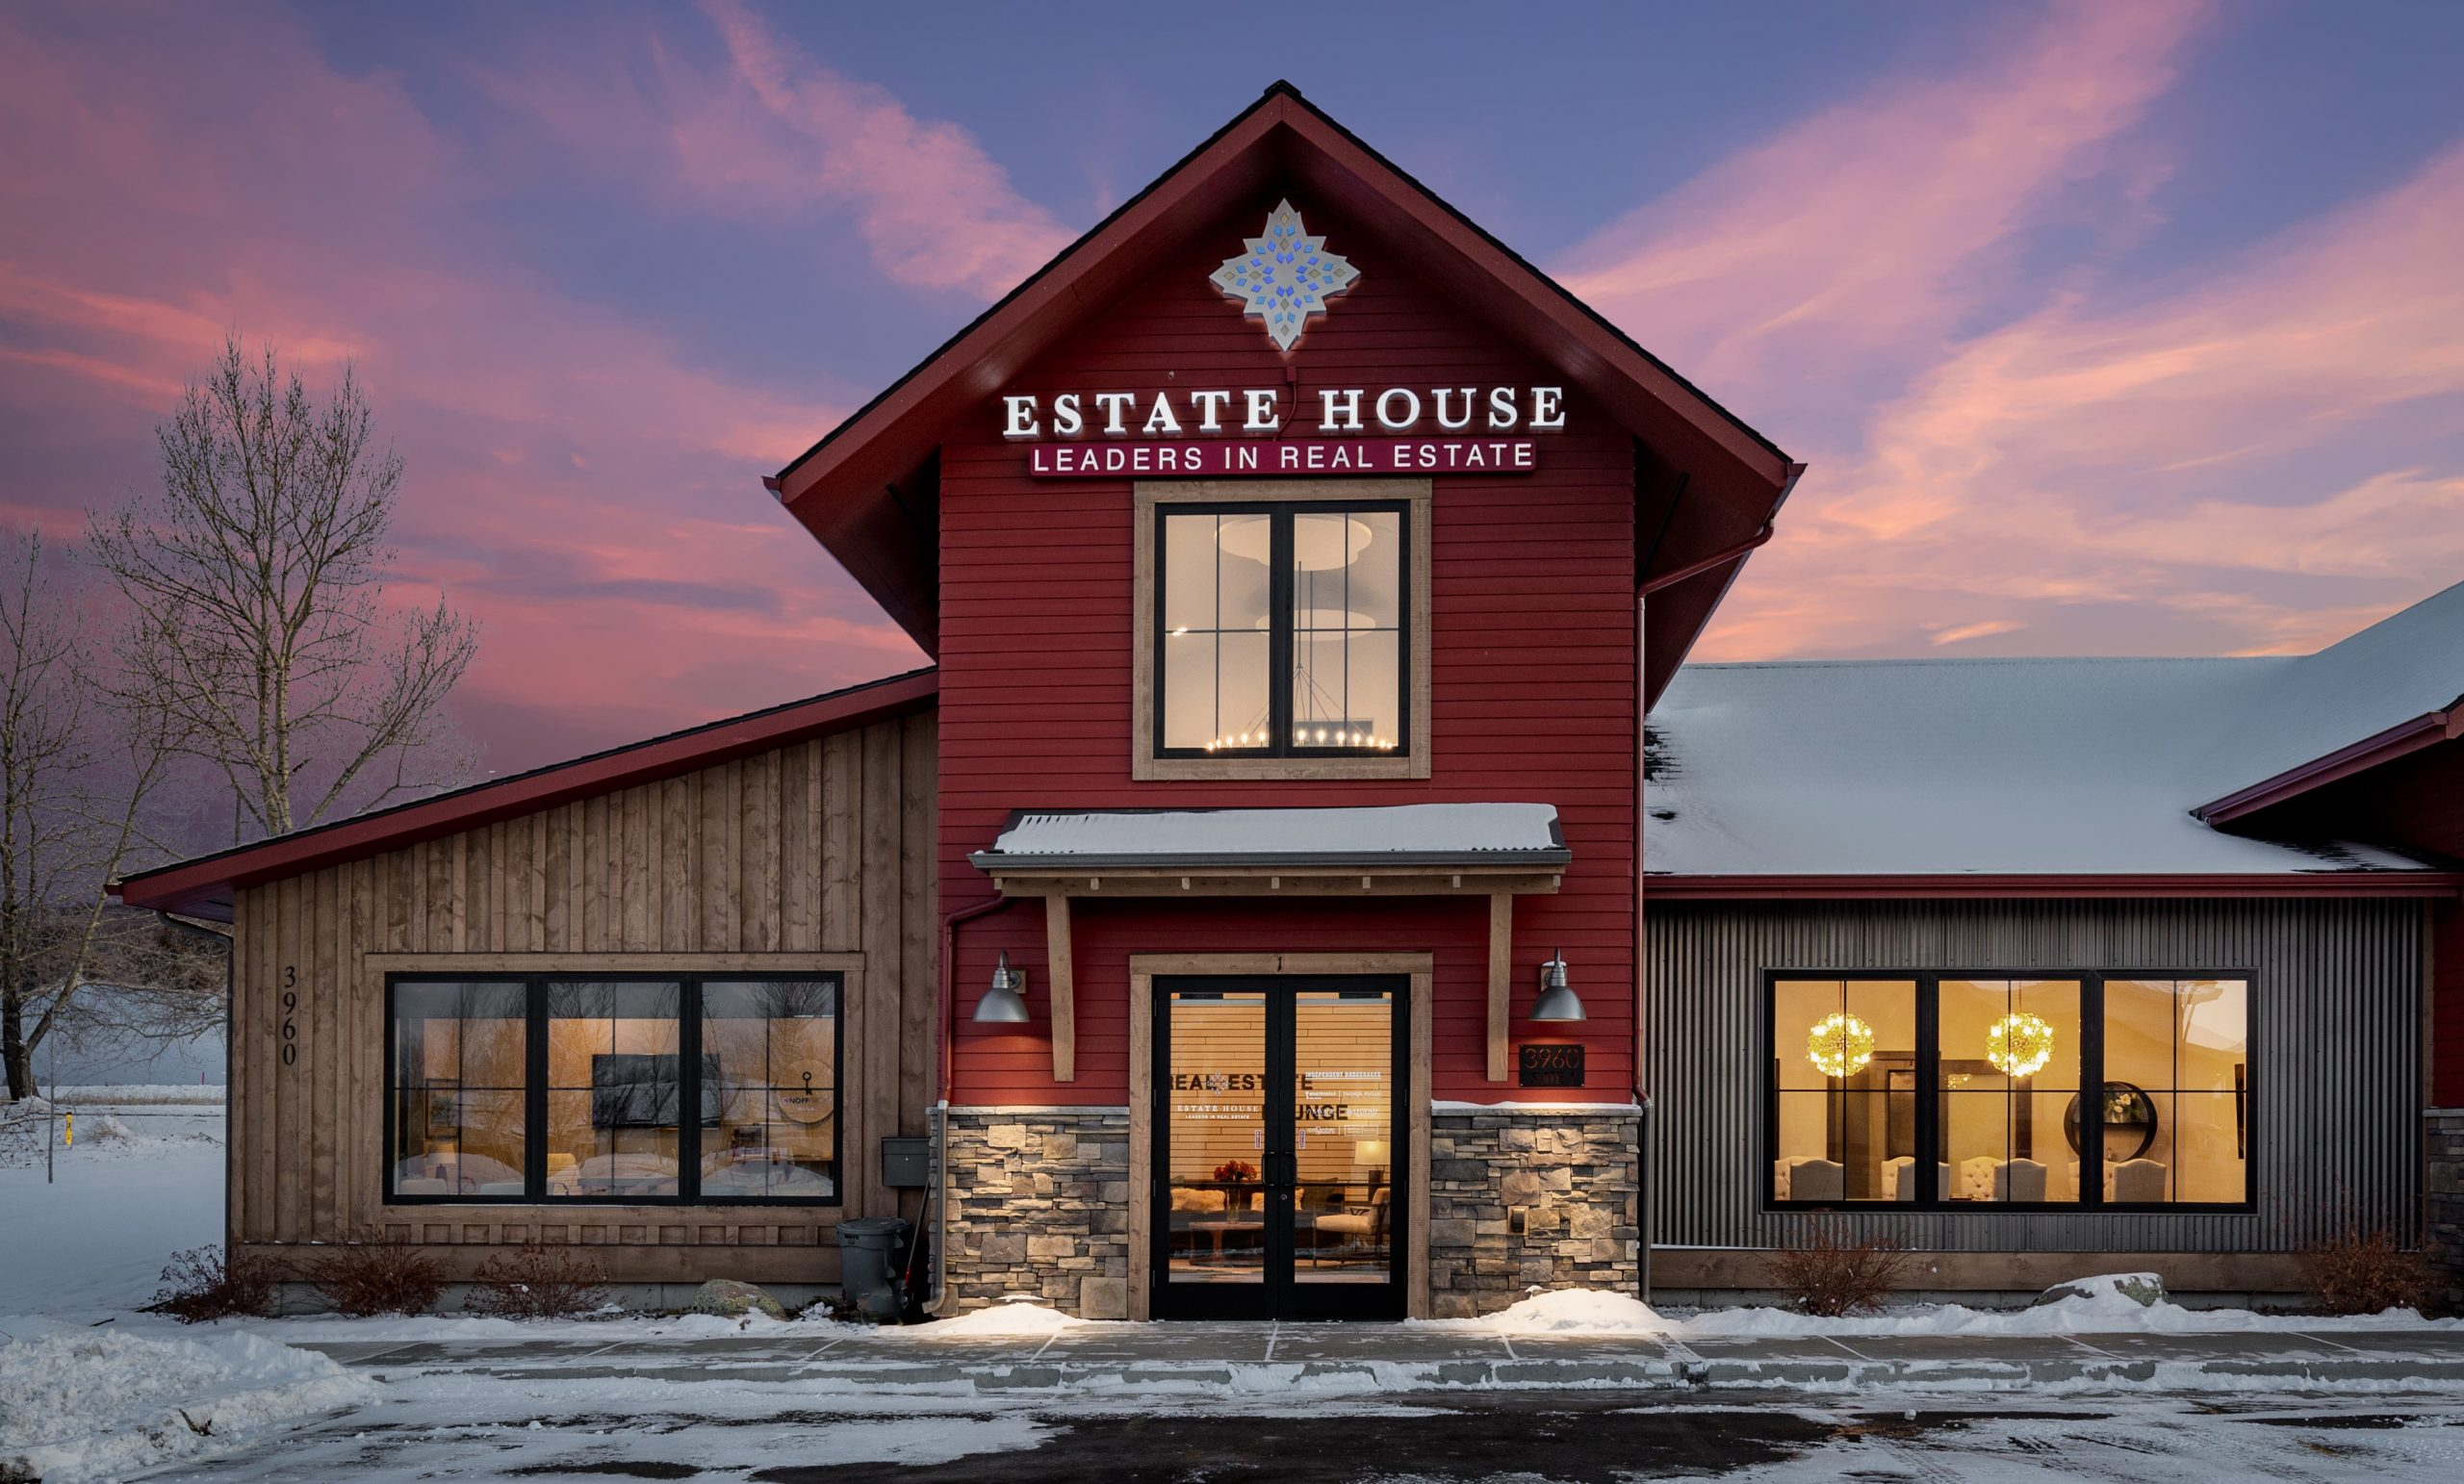 Taunya Fagan Bozeman Real Estate @ ESTATE House, 3960 Valley Commons Drive, Suite 1, Bozeman, MT Photo